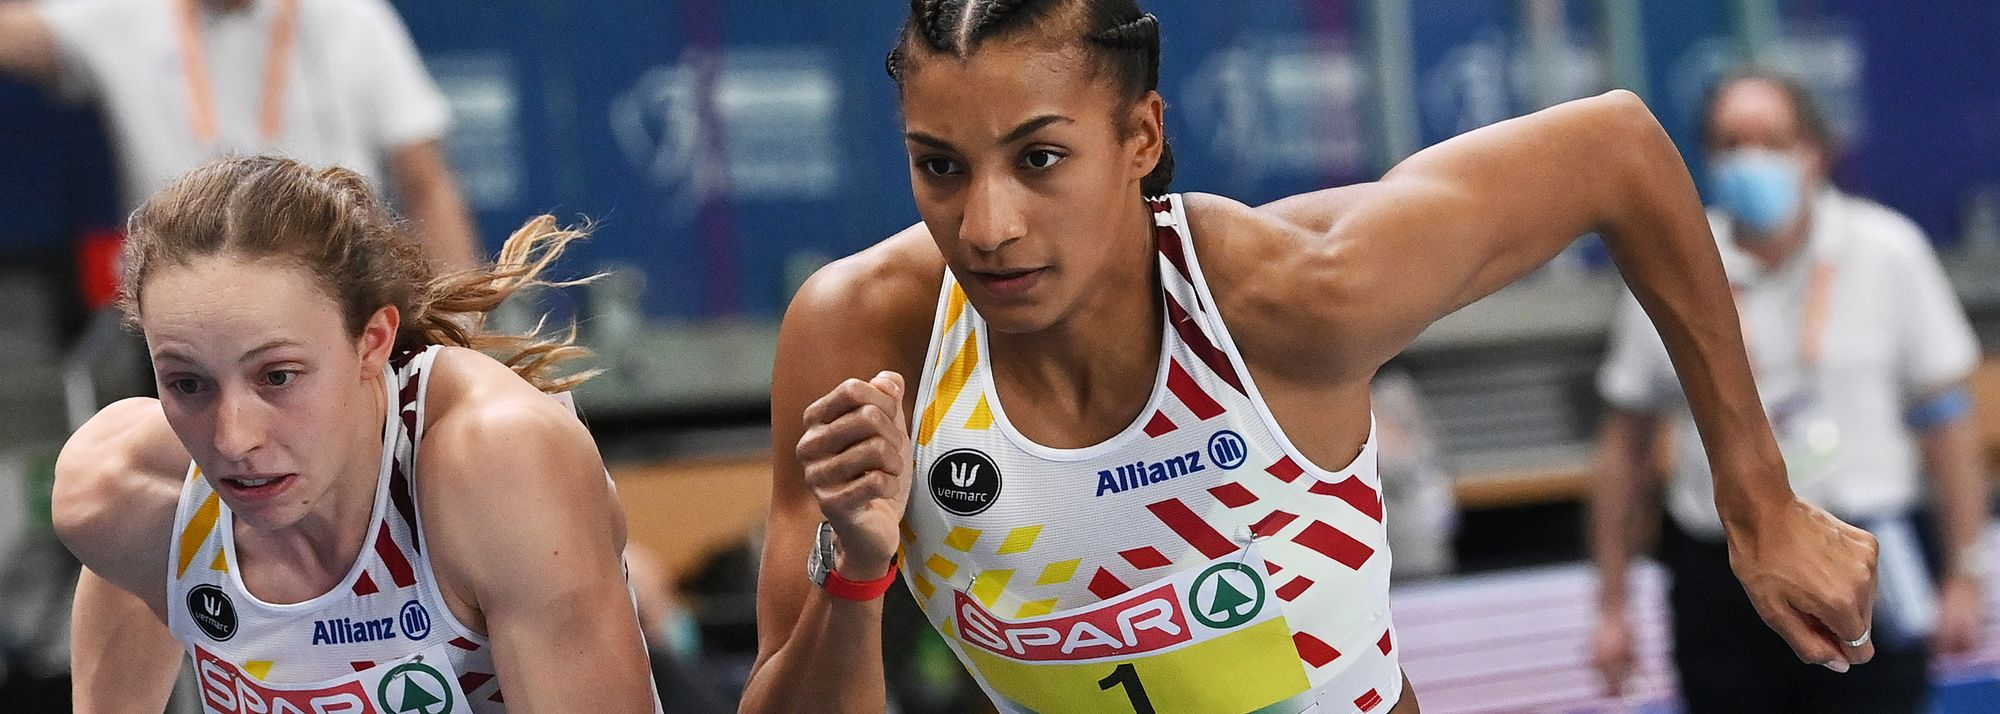 Olympic heptathlon champion Nafissatou Thiam highlighted the first day of finals at the European Indoor Championships in Torun on Friday (5) as the Belgian won the pentathlon with a world-leading national record of 4904.